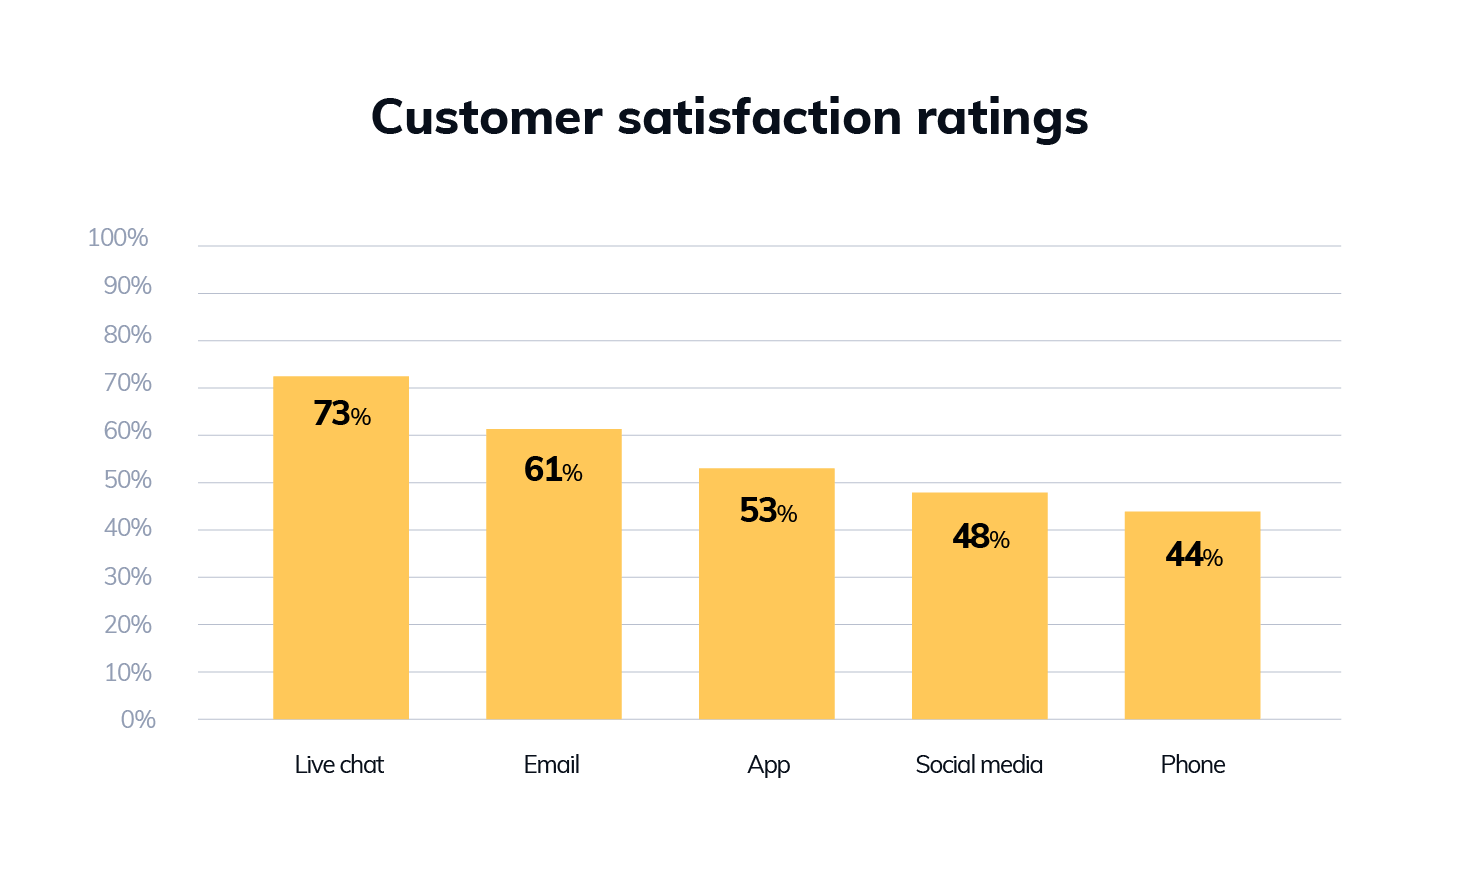 customers satisfaction ratings with live chat